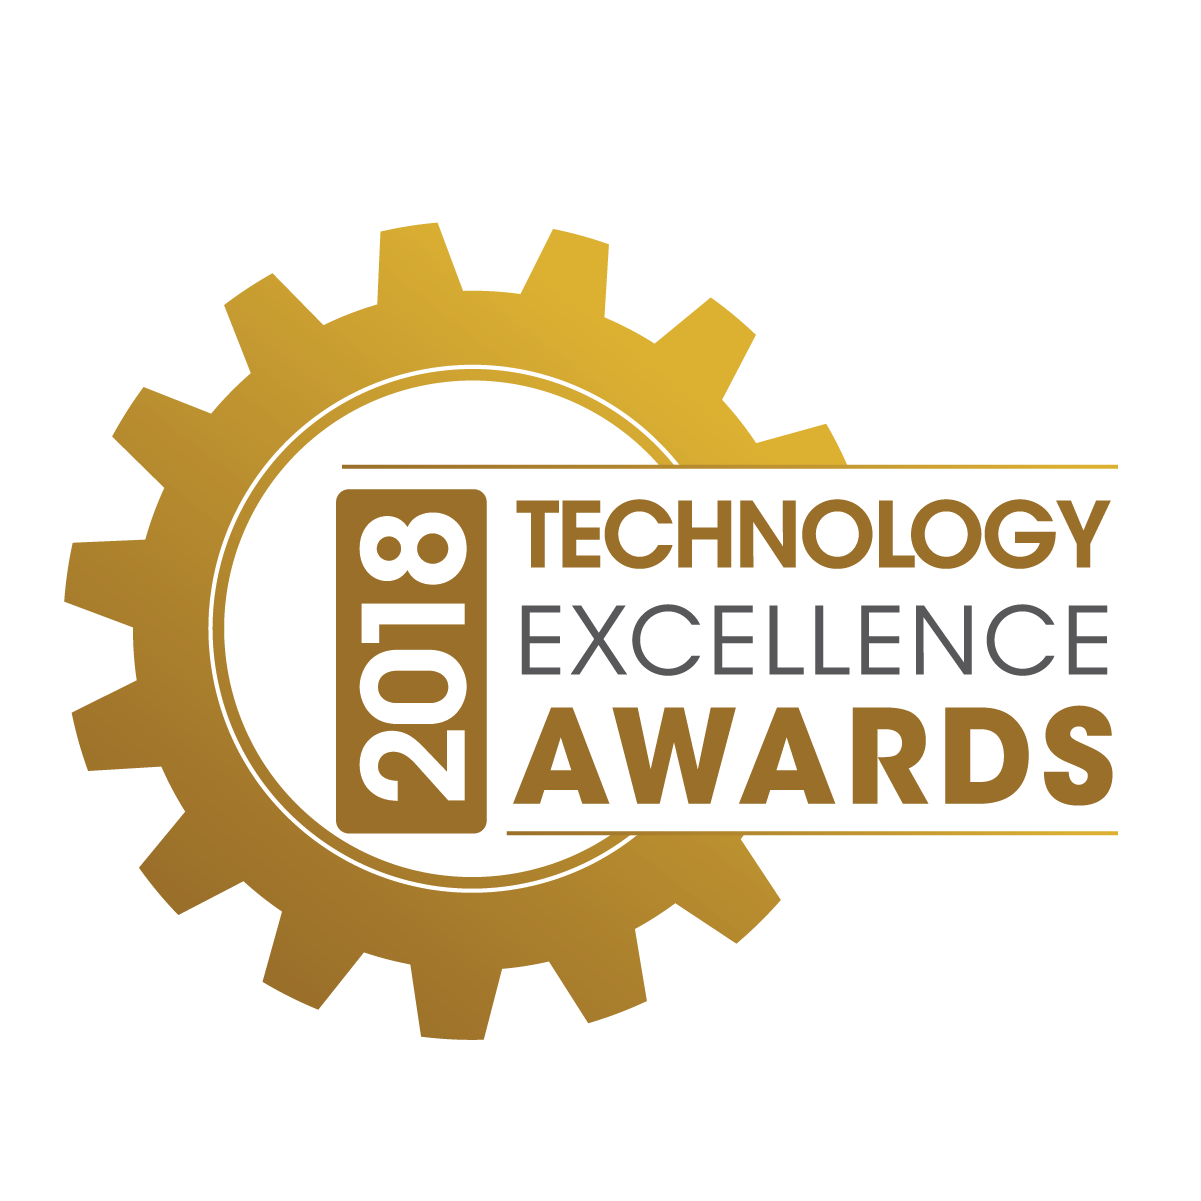 Technology Excellence Awards